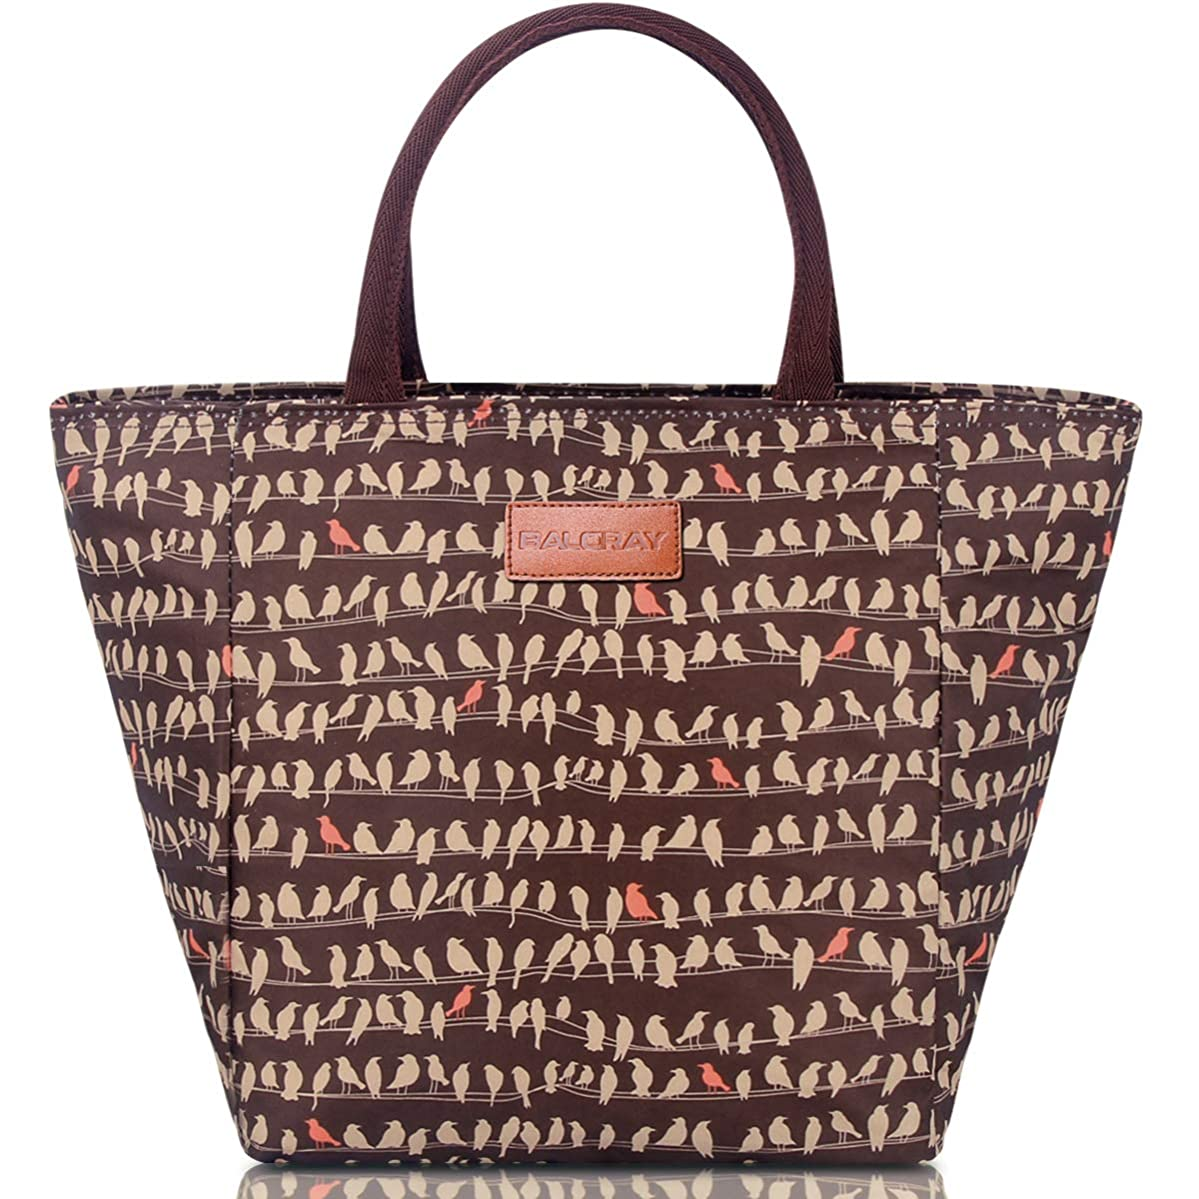 BALORAY Lunch Bag for Women Lunch Tote Bag Lunch Organizer Lunch Holder Lunch Container (G-199XL Brown)